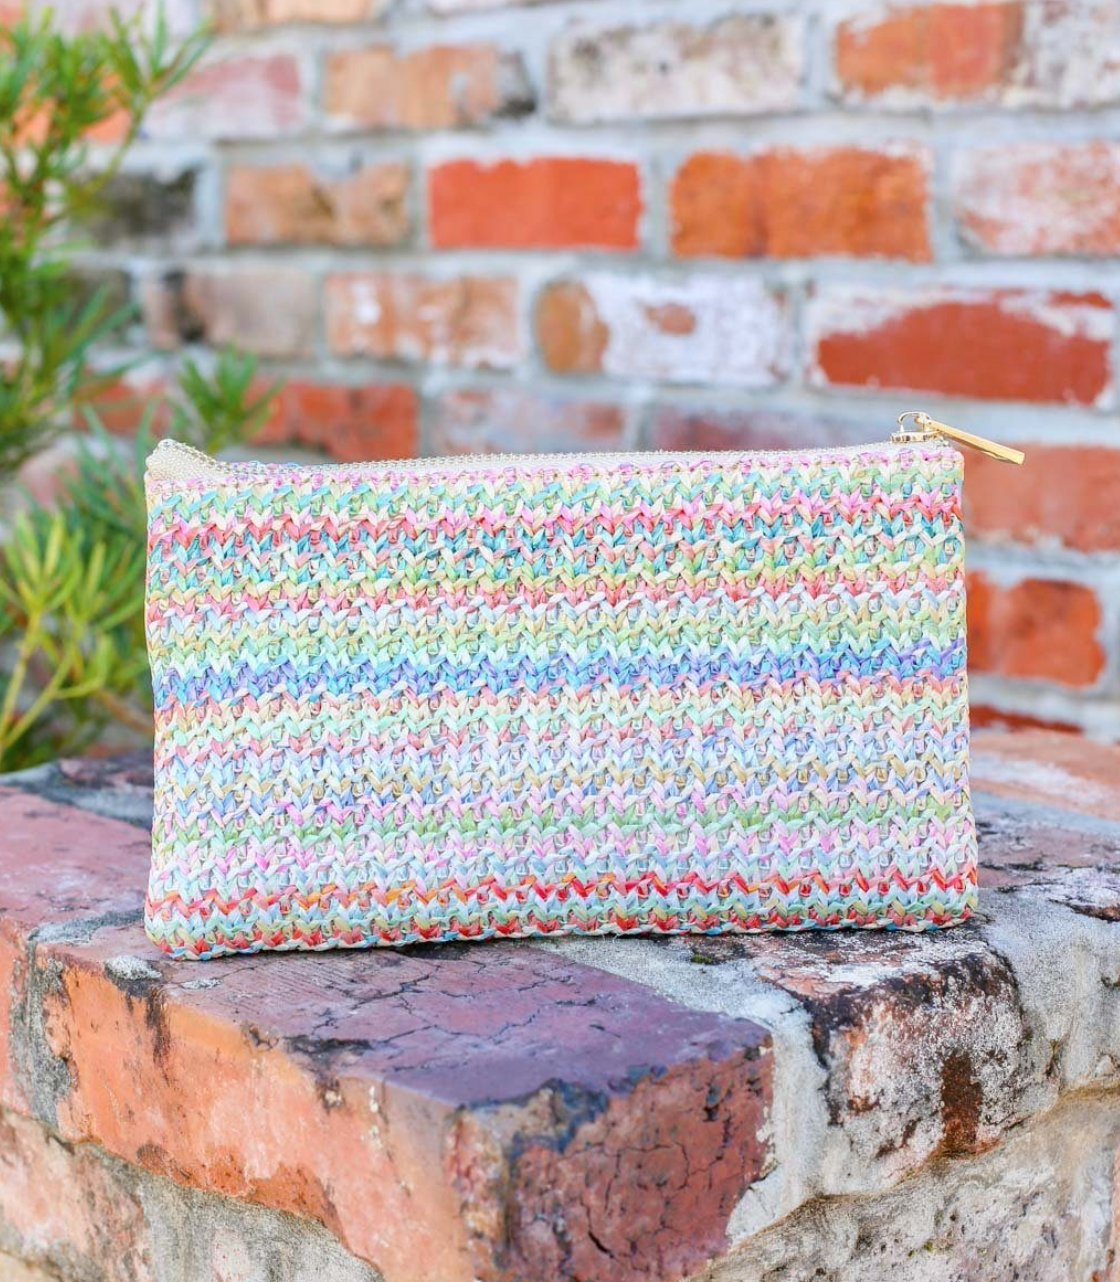 WOVEN STRAW CROSSBODY - Molly's! A Chic and Unique Boutique